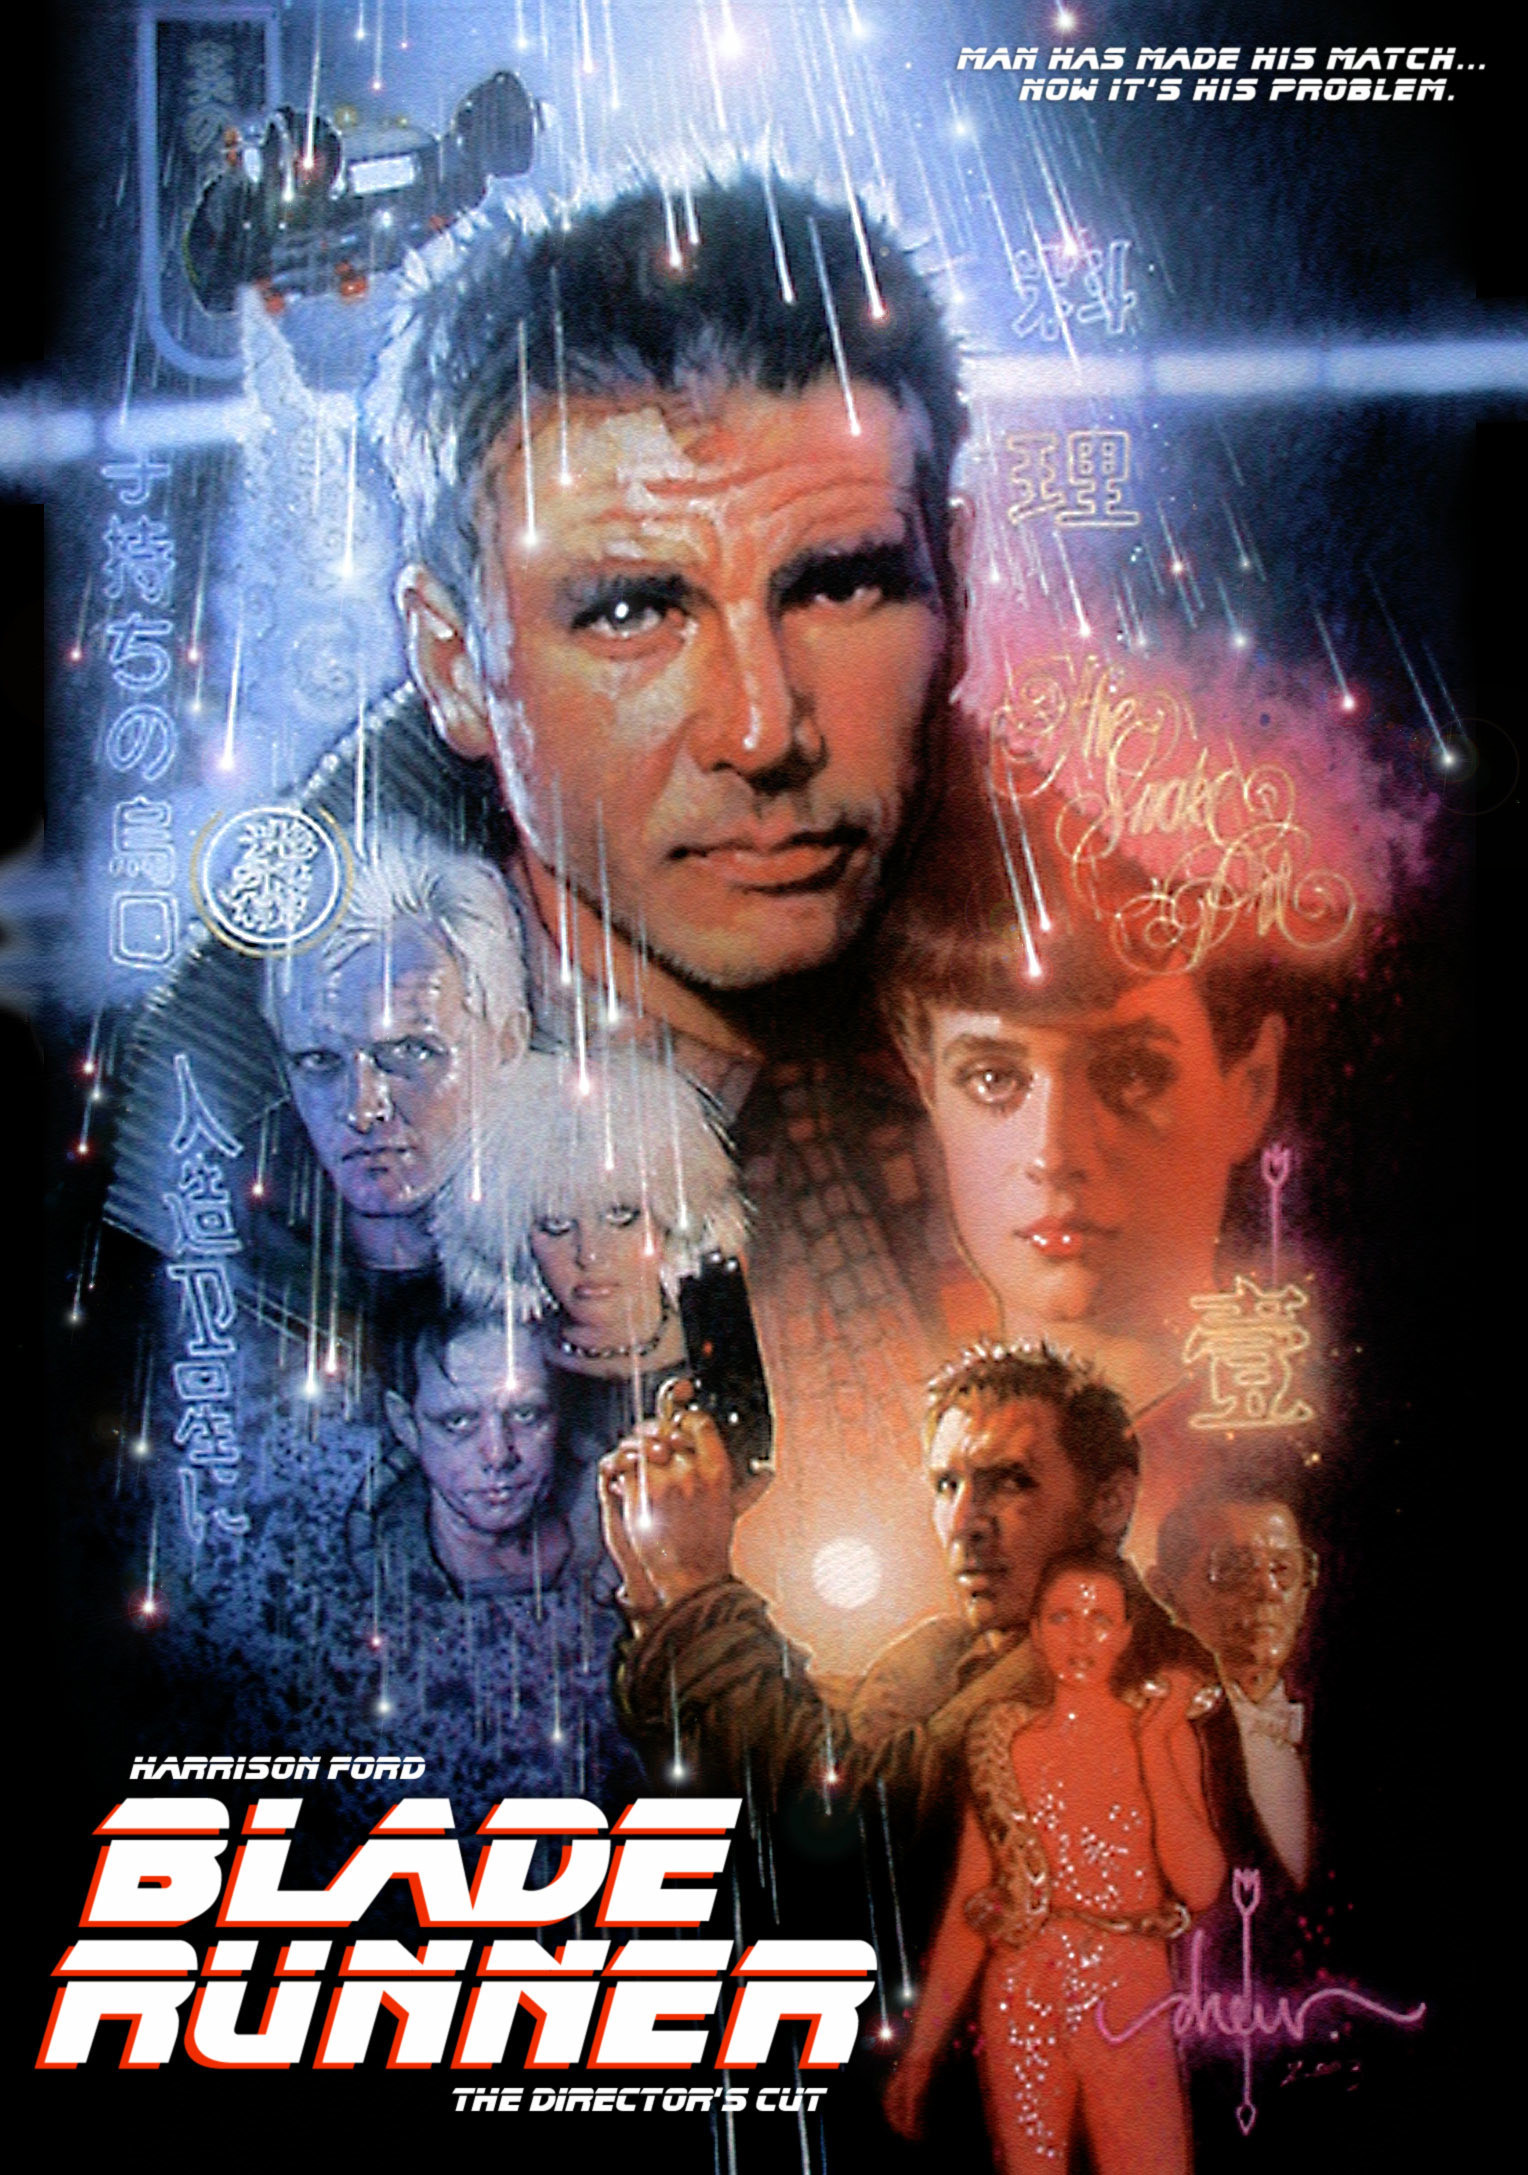 Blade-Runner-Poster-Blade-Runner-Movie-Poster-12